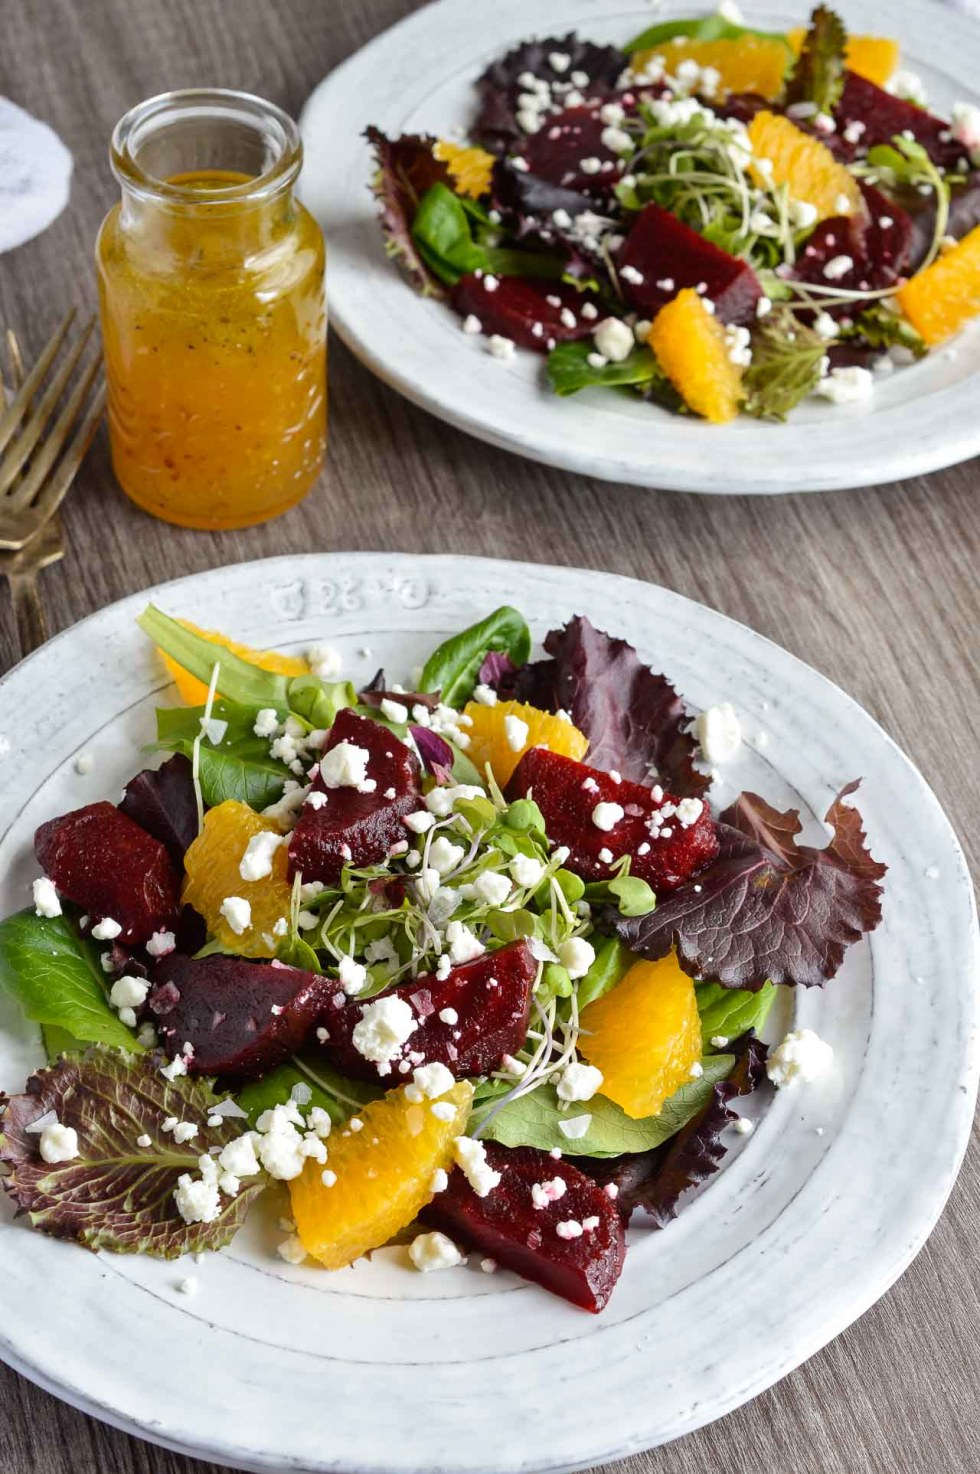 fresh beet salad with oranges, goat cheese and greens on a white plate